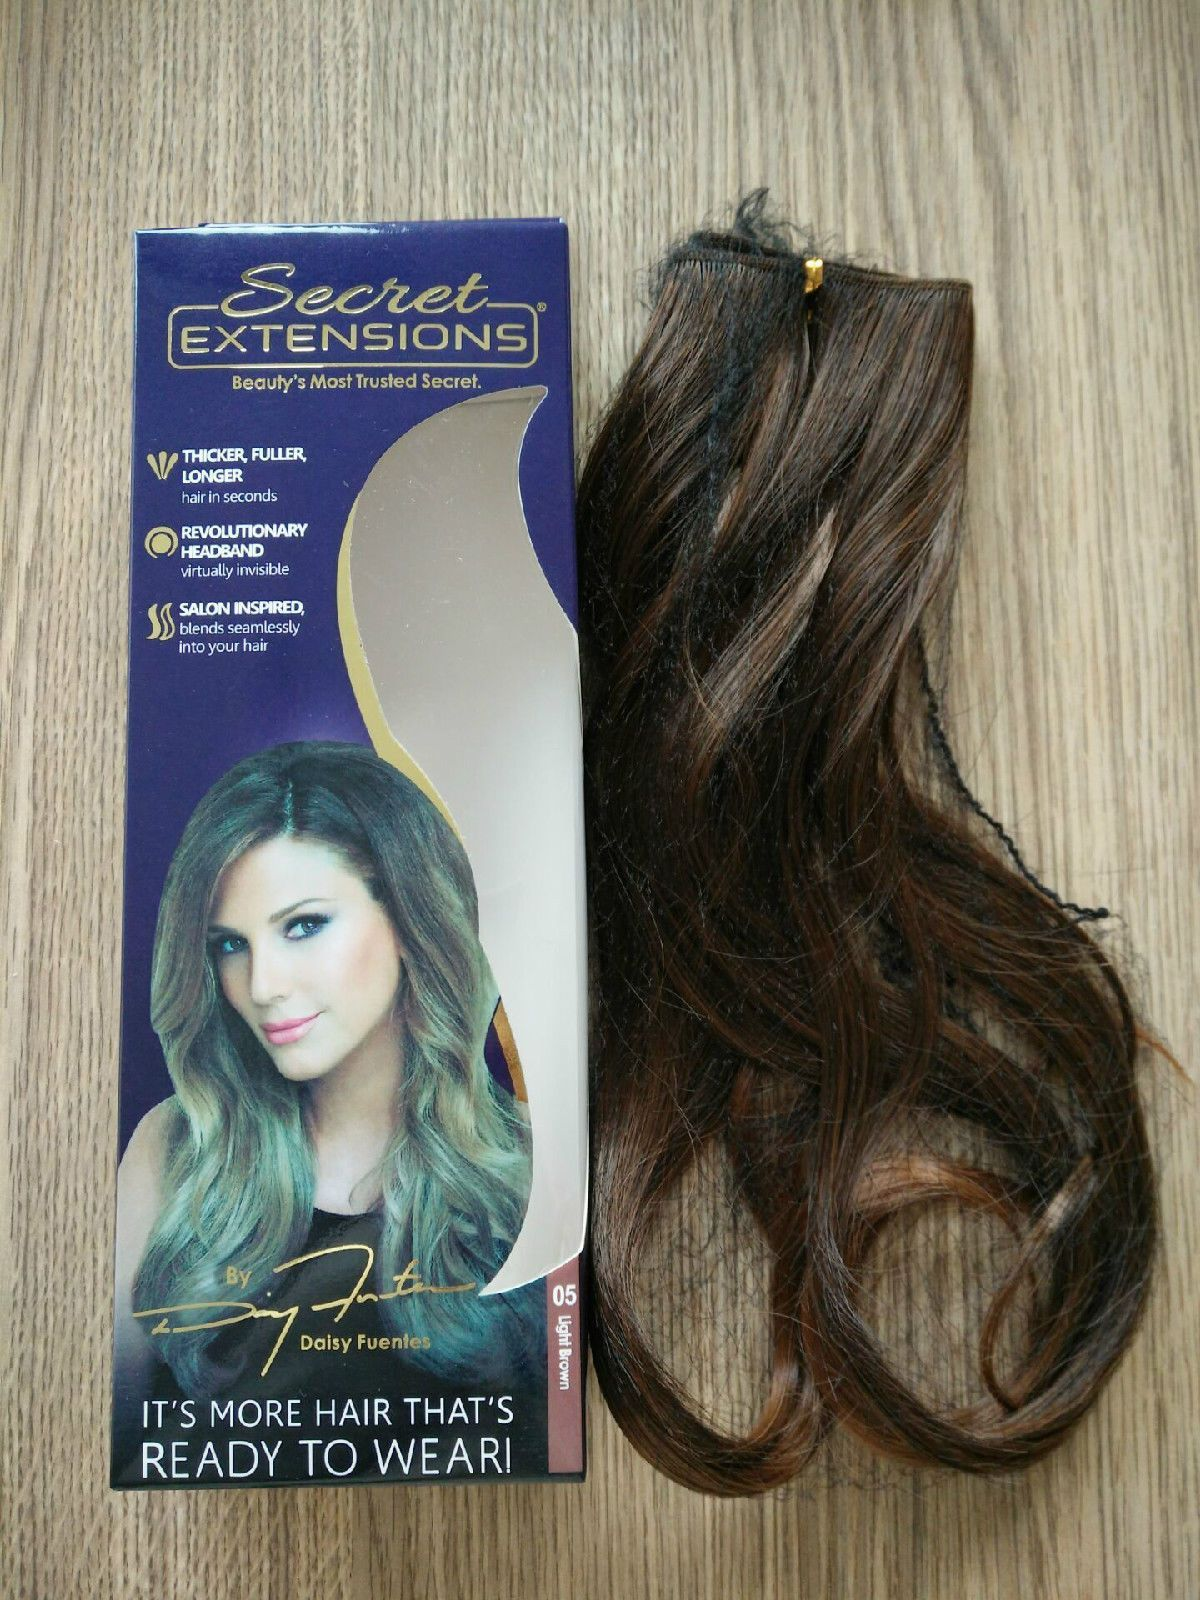 Secret Extensions By Daisy Fuentesmedium Brown Hair As Seen On Tv